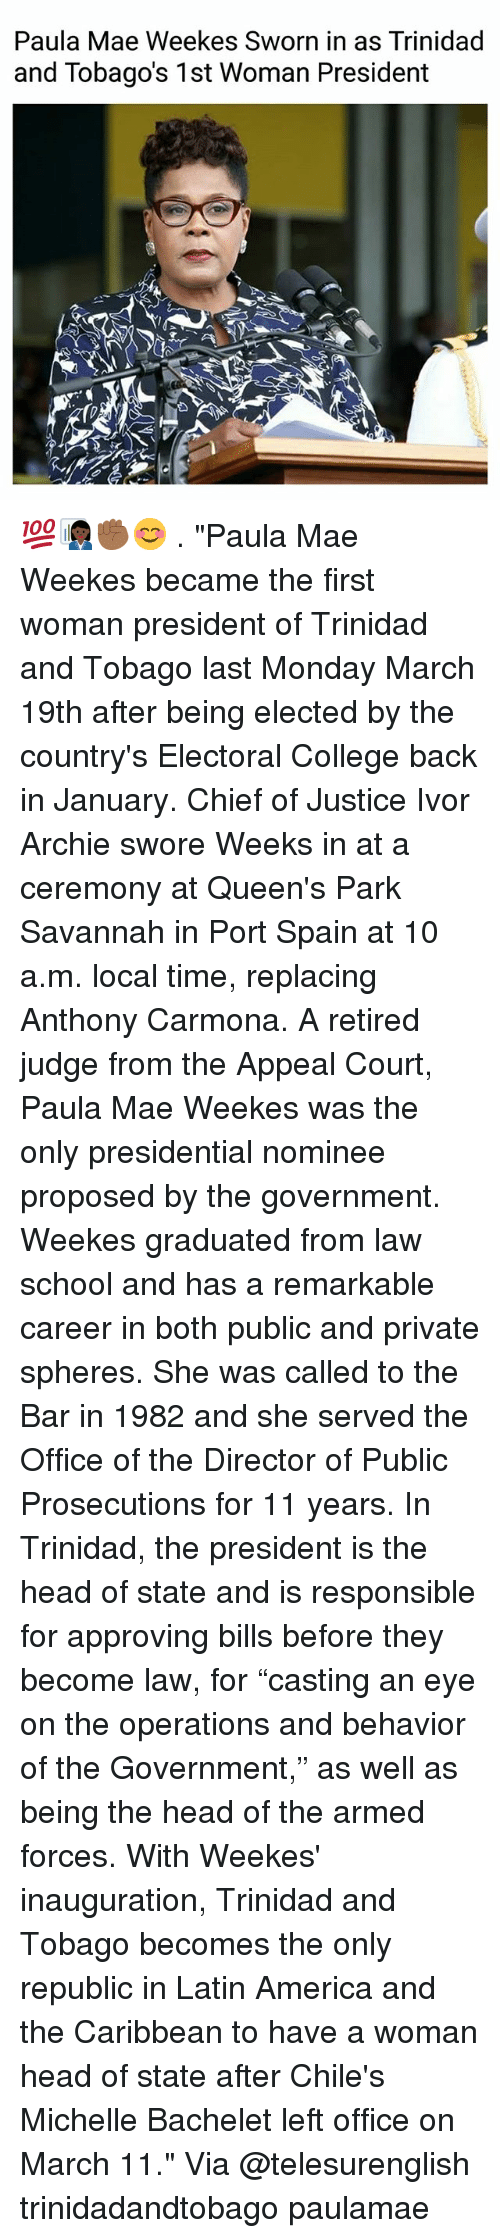 """America, College, and Head: Paula Mae Weekes Sworn in as Trinidad  and Tobago's 1st Woman President 💯👩🏿💼✊🏾😊 . """"Paula Mae Weekes became the first woman president of Trinidad and Tobago last Monday March 19th after being elected by the country's Electoral College back in January. Chief of Justice Ivor Archie swore Weeks in at a ceremony at Queen's Park Savannah in Port Spain at 10 a.m. local time, replacing Anthony Carmona. A retired judge from the Appeal Court, Paula Mae Weekes was the only presidential nominee proposed by the government. Weekes graduated from law school and has a remarkable career in both public and private spheres. She was called to the Bar in 1982 and she served the Office of the Director of Public Prosecutions for 11 years. In Trinidad, the president is the head of state and is responsible for approving bills before they become law, for """"casting an eye on the operations and behavior of the Government,"""" as well as being the head of the armed forces. With Weekes' inauguration, Trinidad and Tobago becomes the only republic in Latin America and the Caribbean to have a woman head of state after Chile's Michelle Bachelet left office on March 11."""" Via @telesurenglish trinidadandtobago paulamae"""